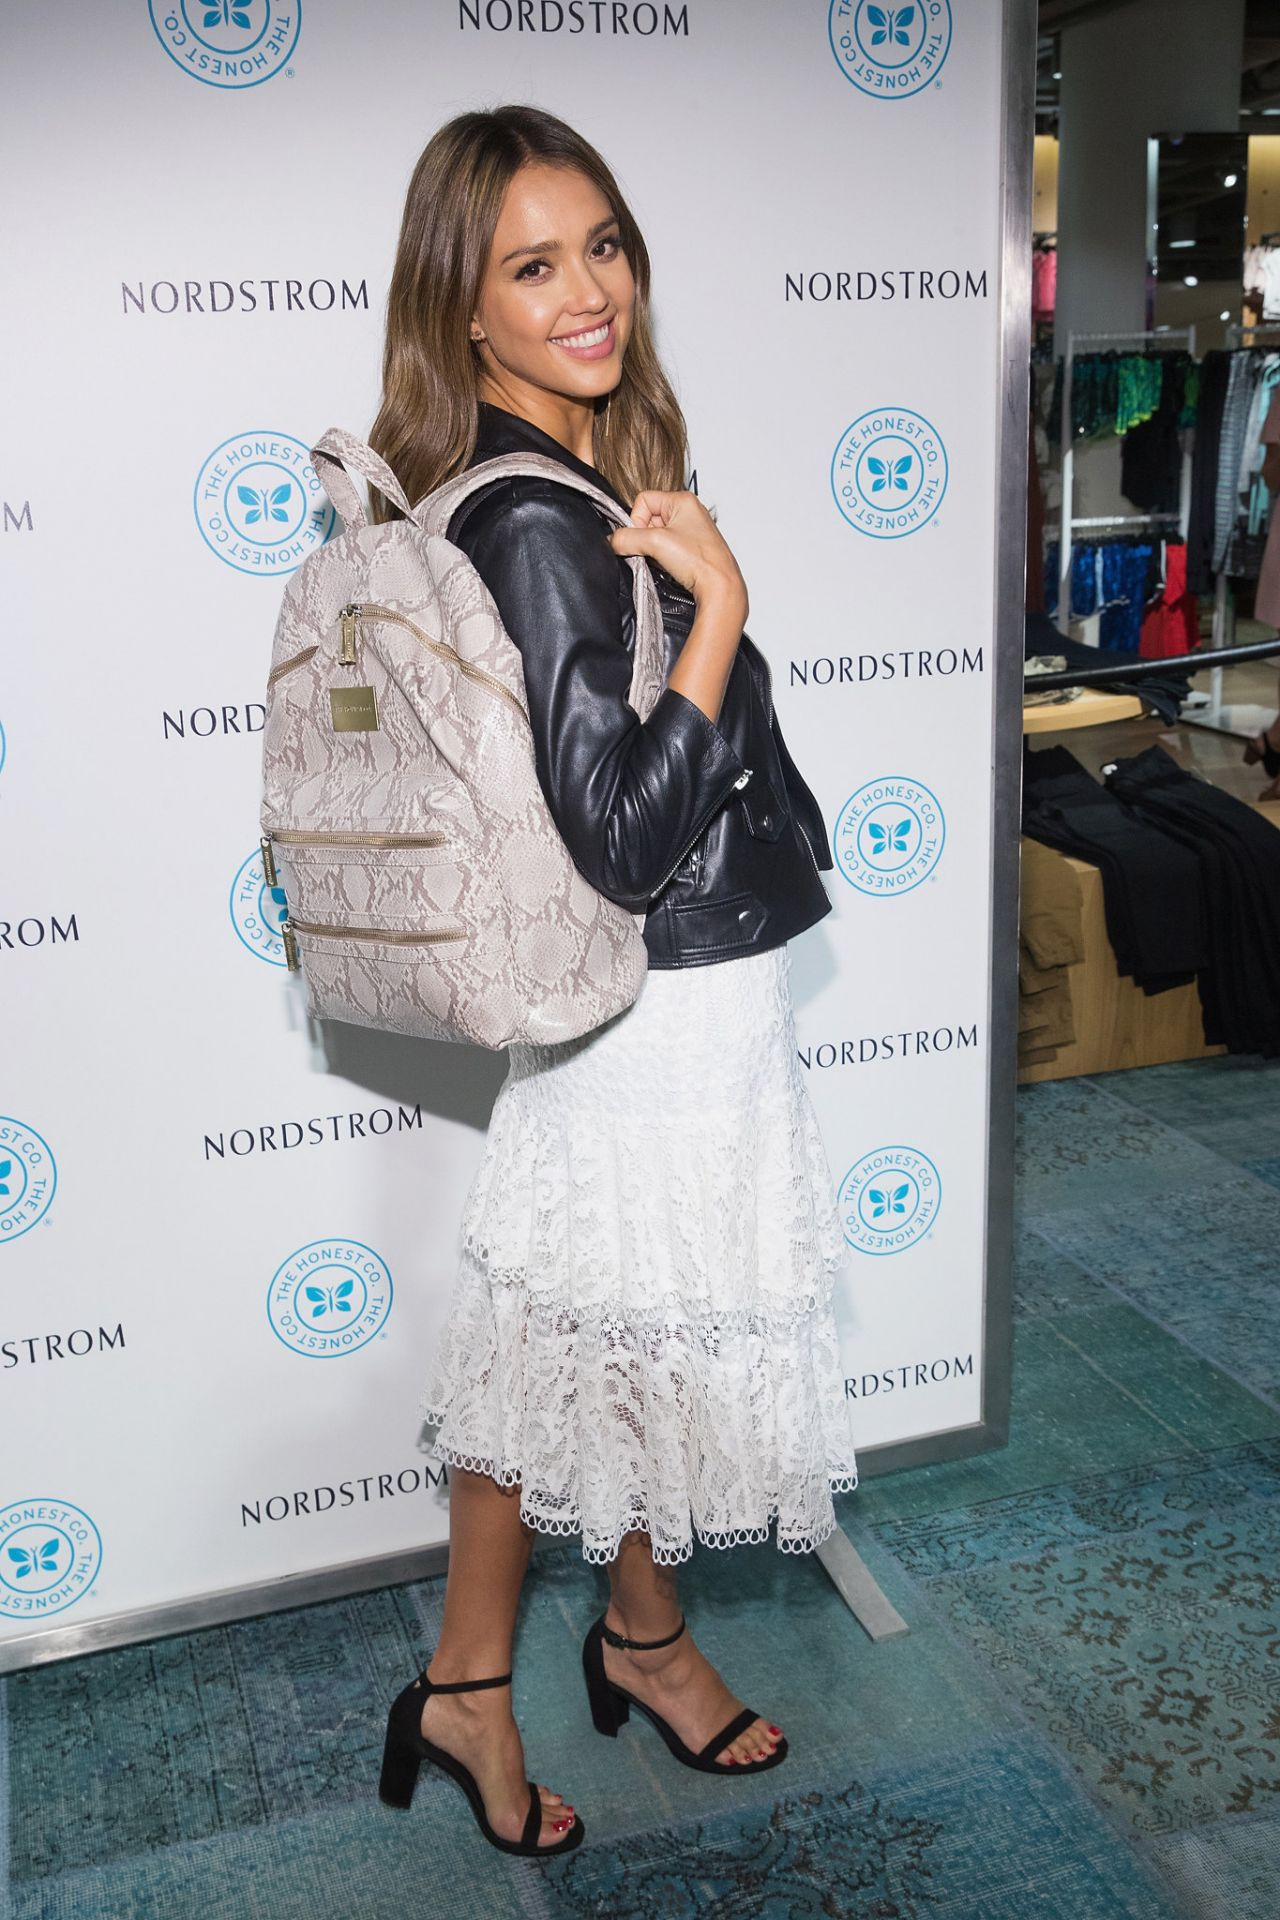 http://celebmafia.com/wp-content/uploads/2016/08/jessica-alba-the-honest-company-brand-backpack-at-nordstrom-downtown-seattle-8-4-2016-3.jpg